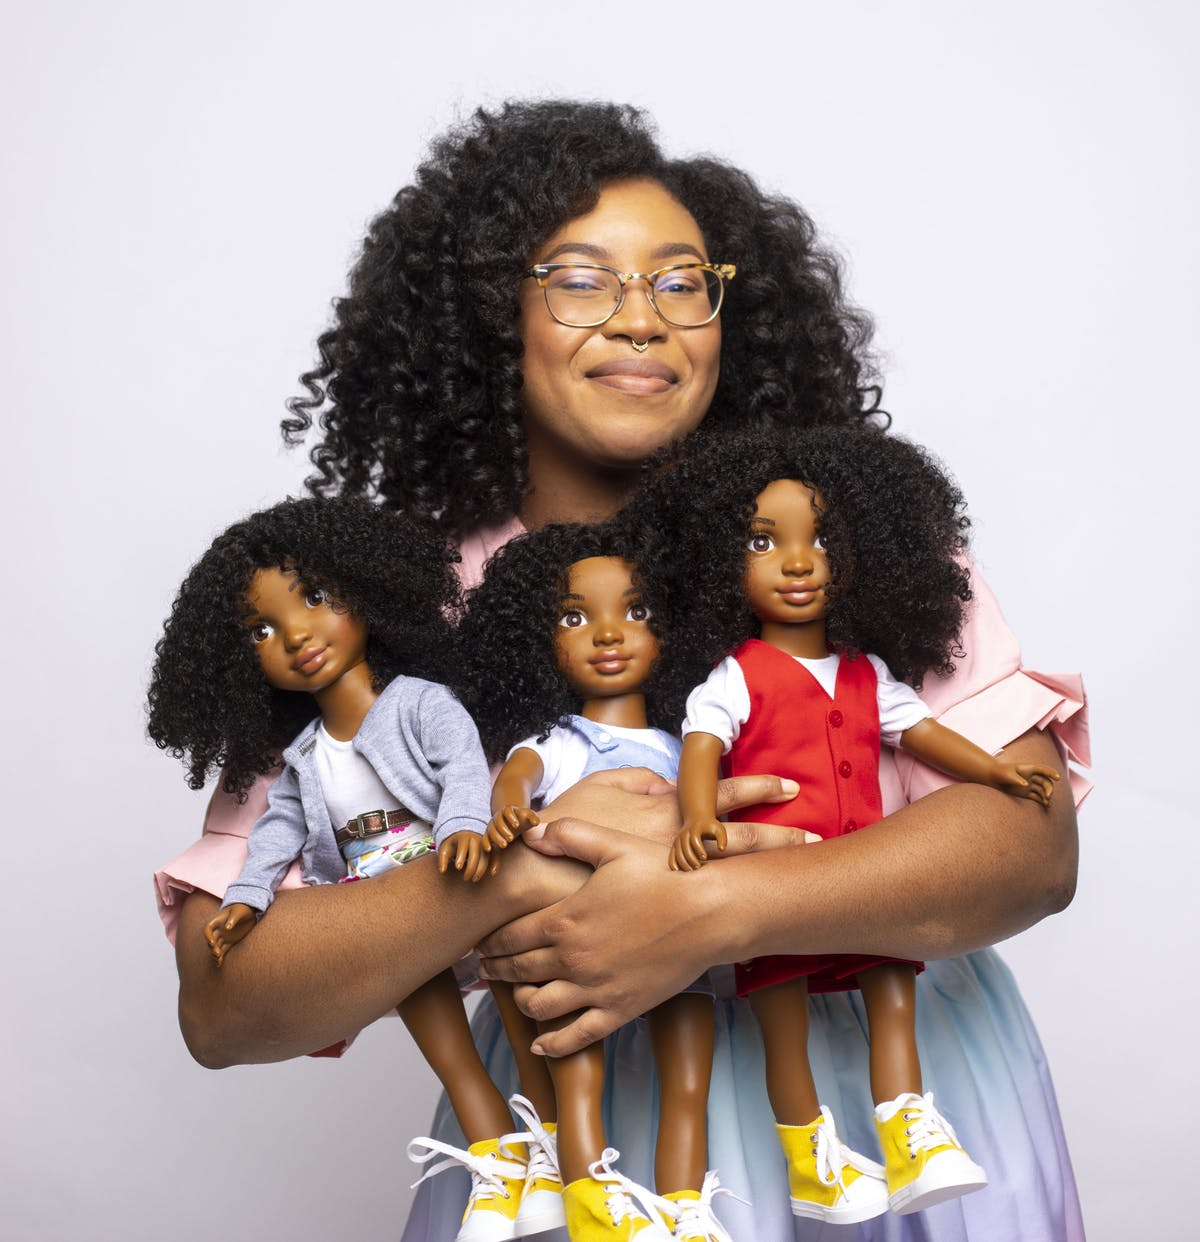 Female Founder of Healthy Roots Dolls, Yelitsa Jean-Charles. Natural curls.